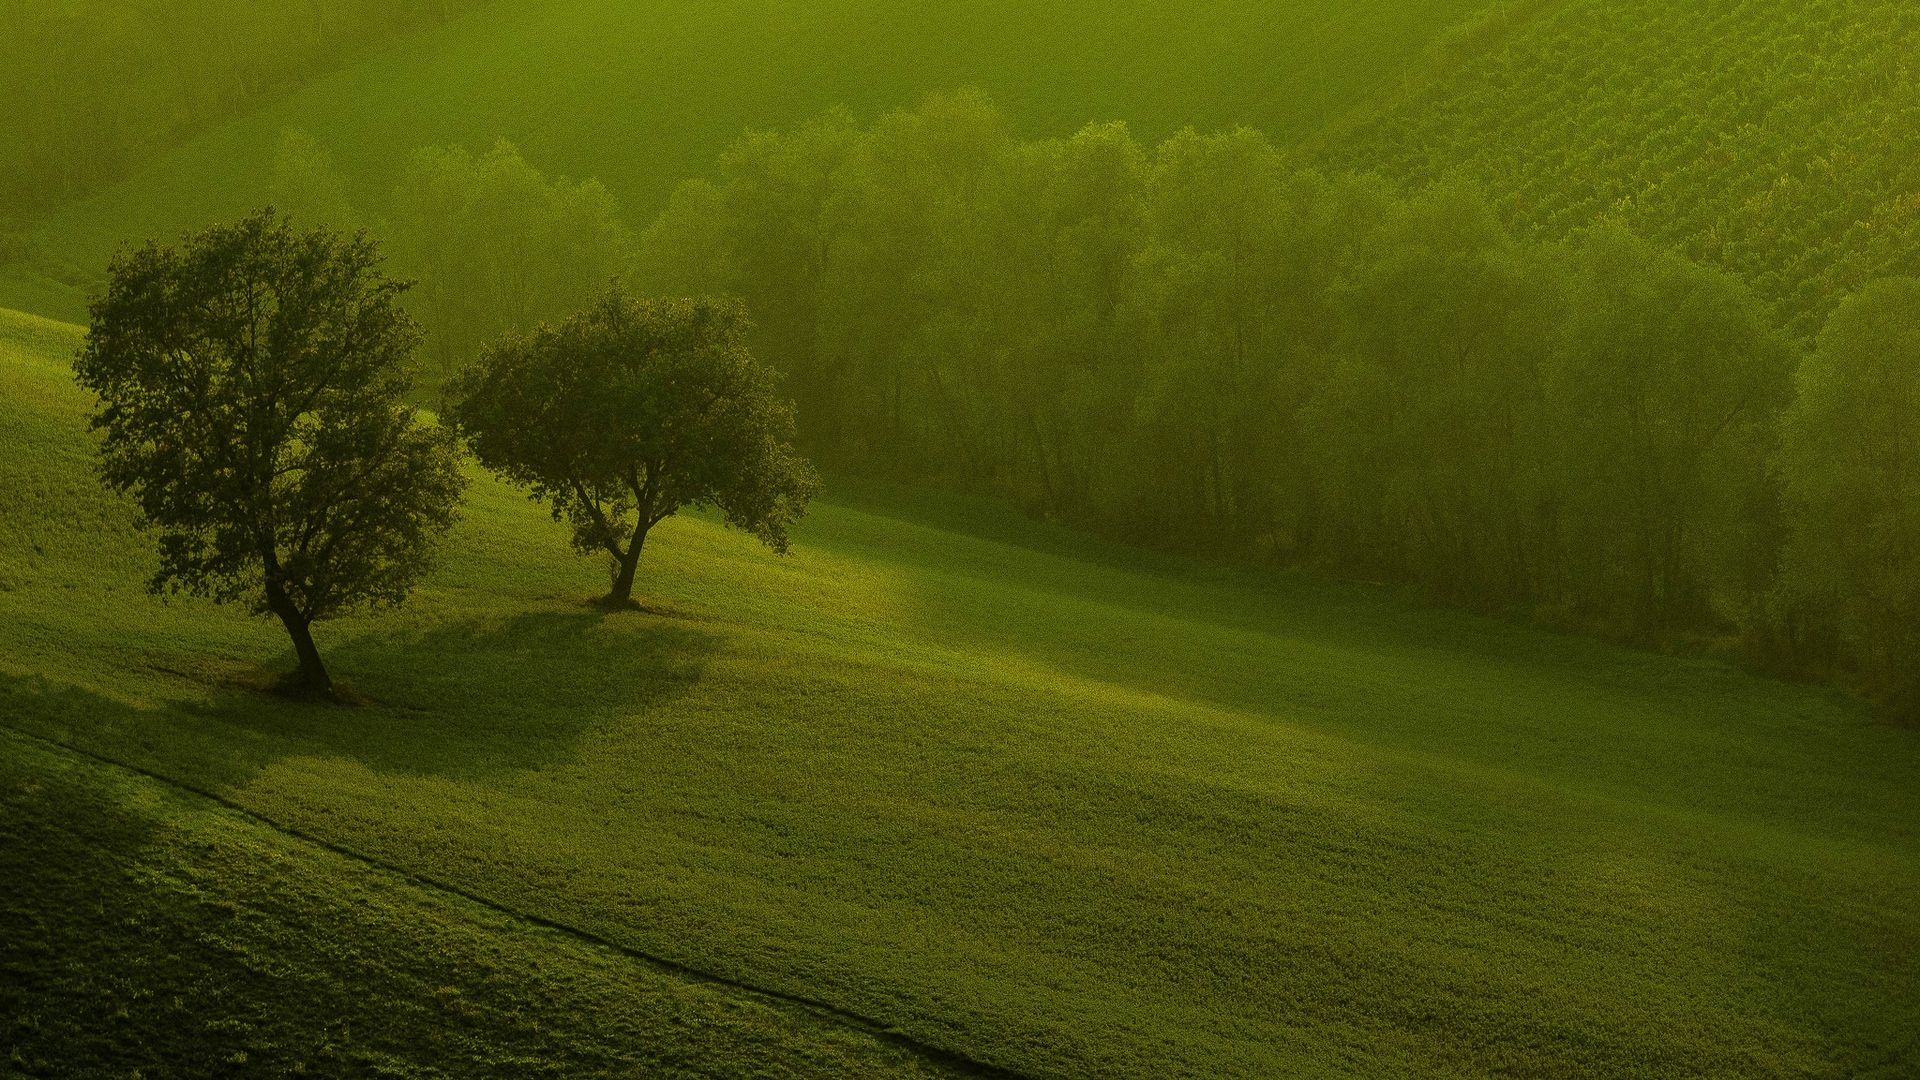 Green nature 3d hd wallpapers for your windows 8 places - Green nature wallpaper full hd ...